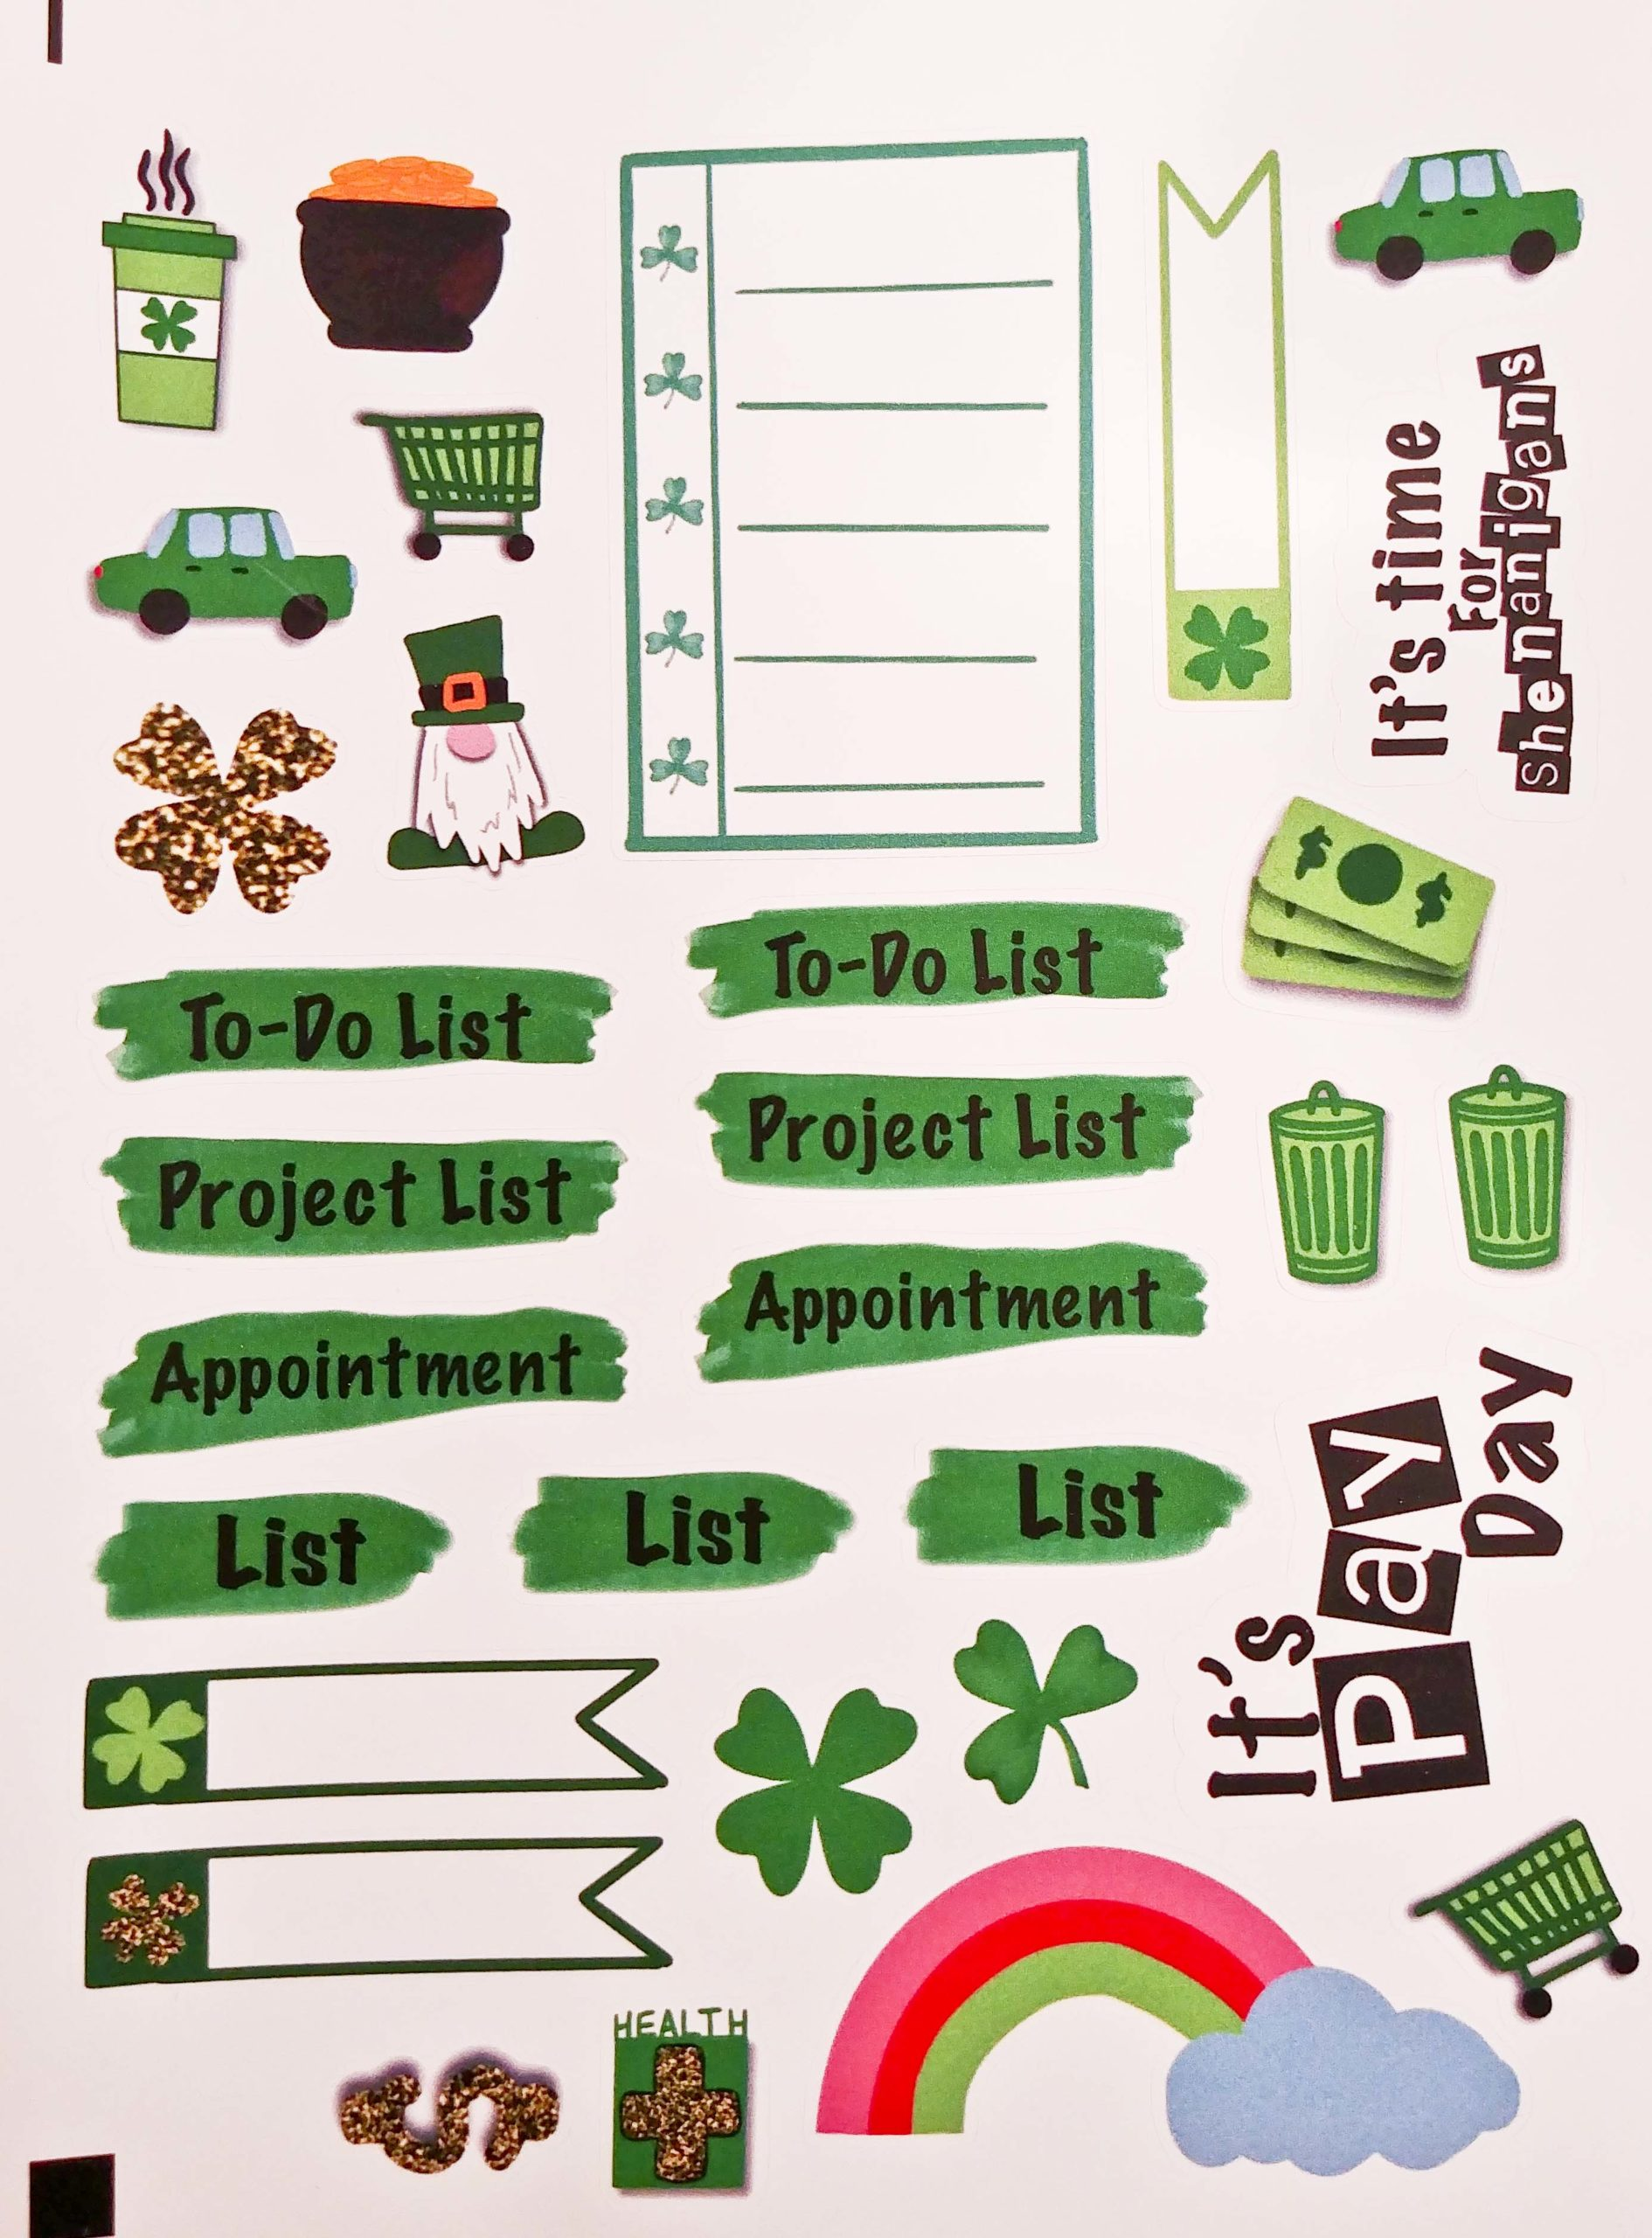 St. Patrick's Day sticker sheet